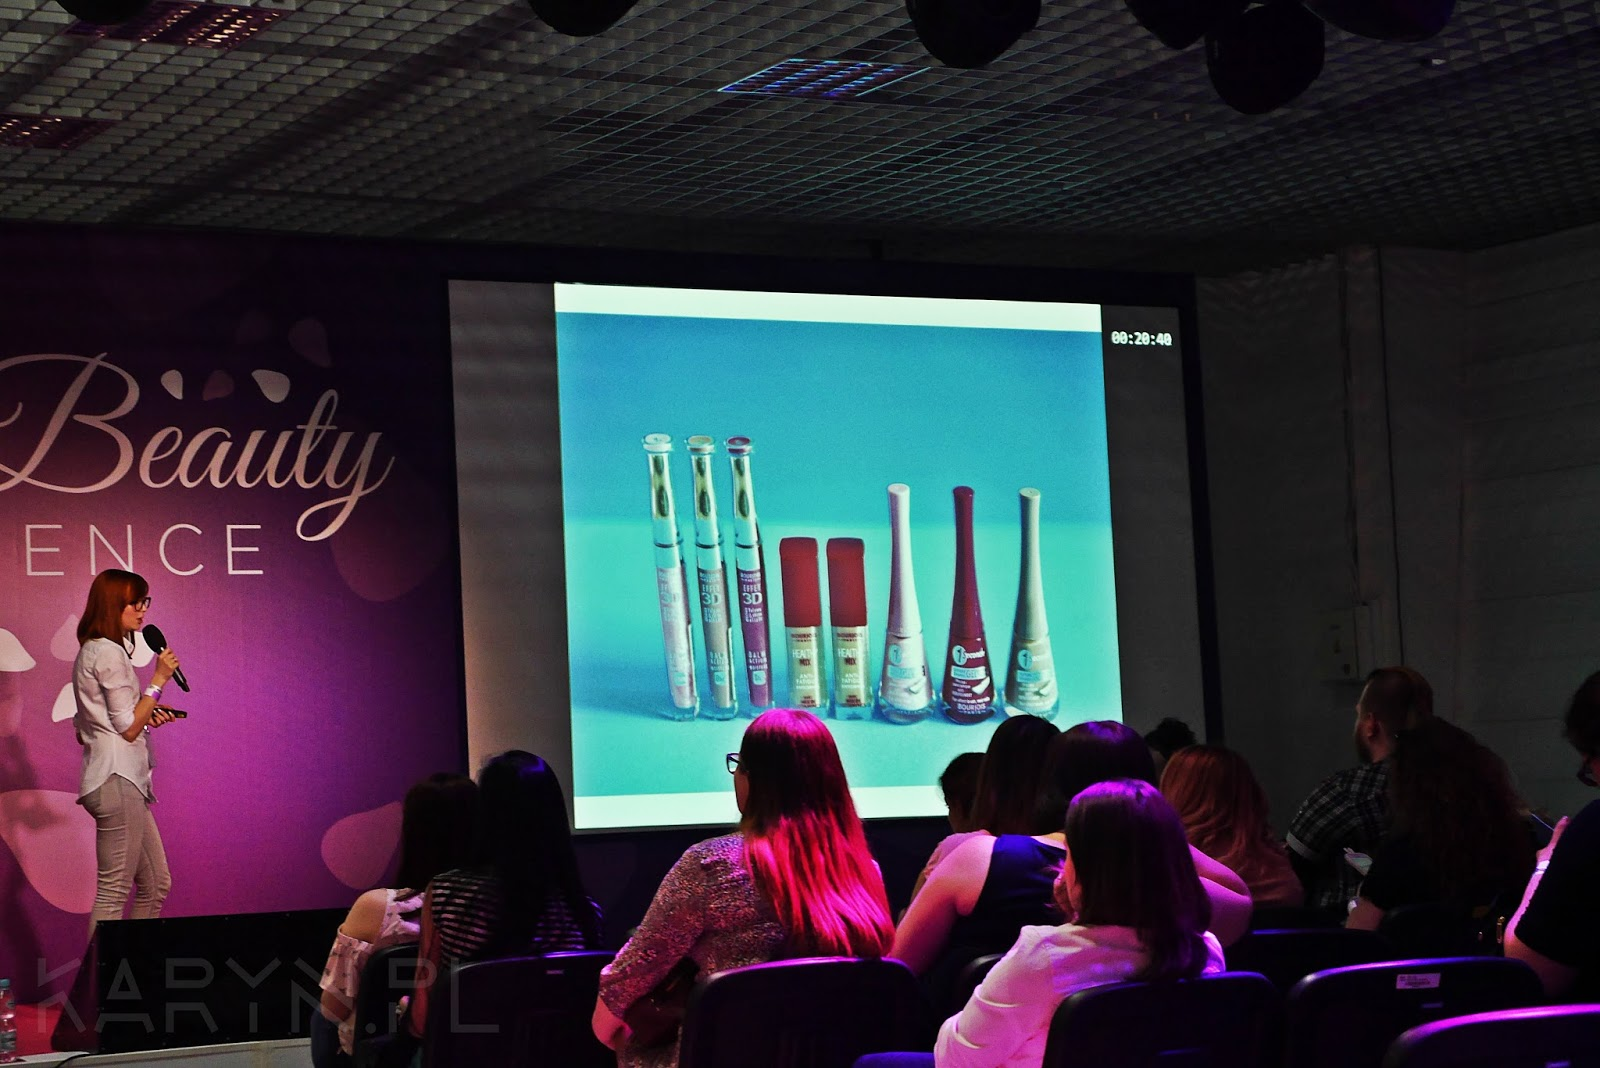 konferencja_meetbeauty_2017_beauty_days_karyn_blog_ptakexpo_22051720